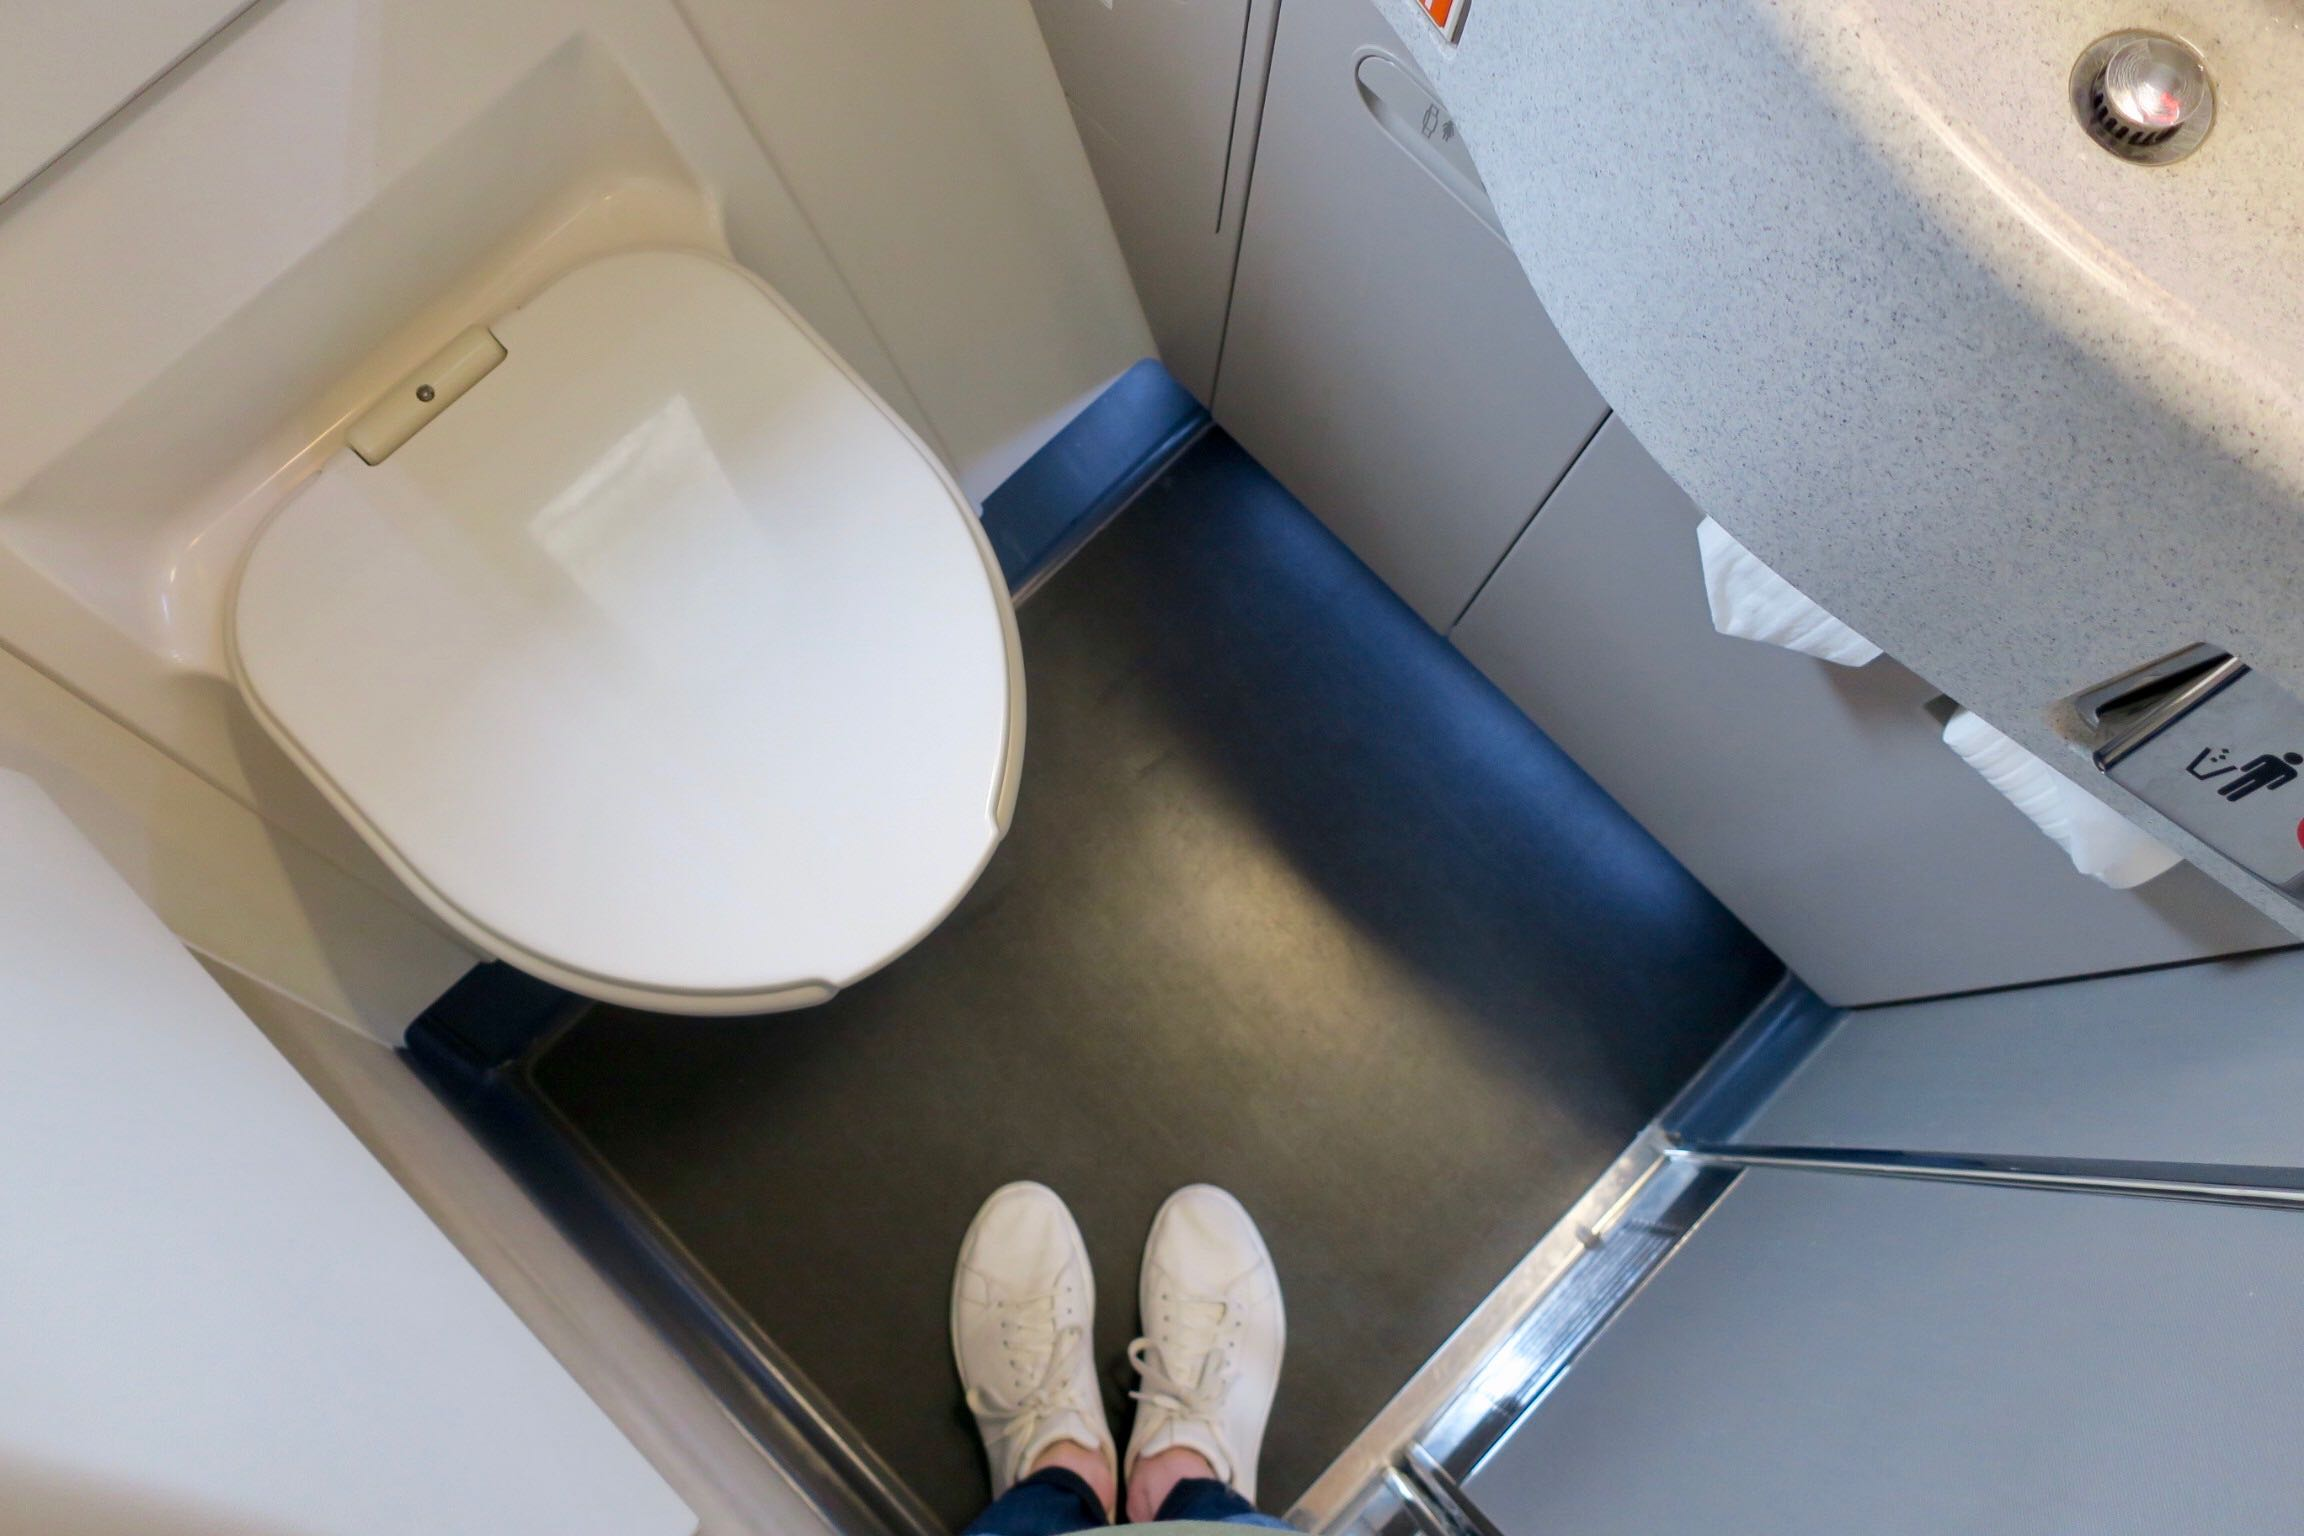 China Airlines Business Class lavatory